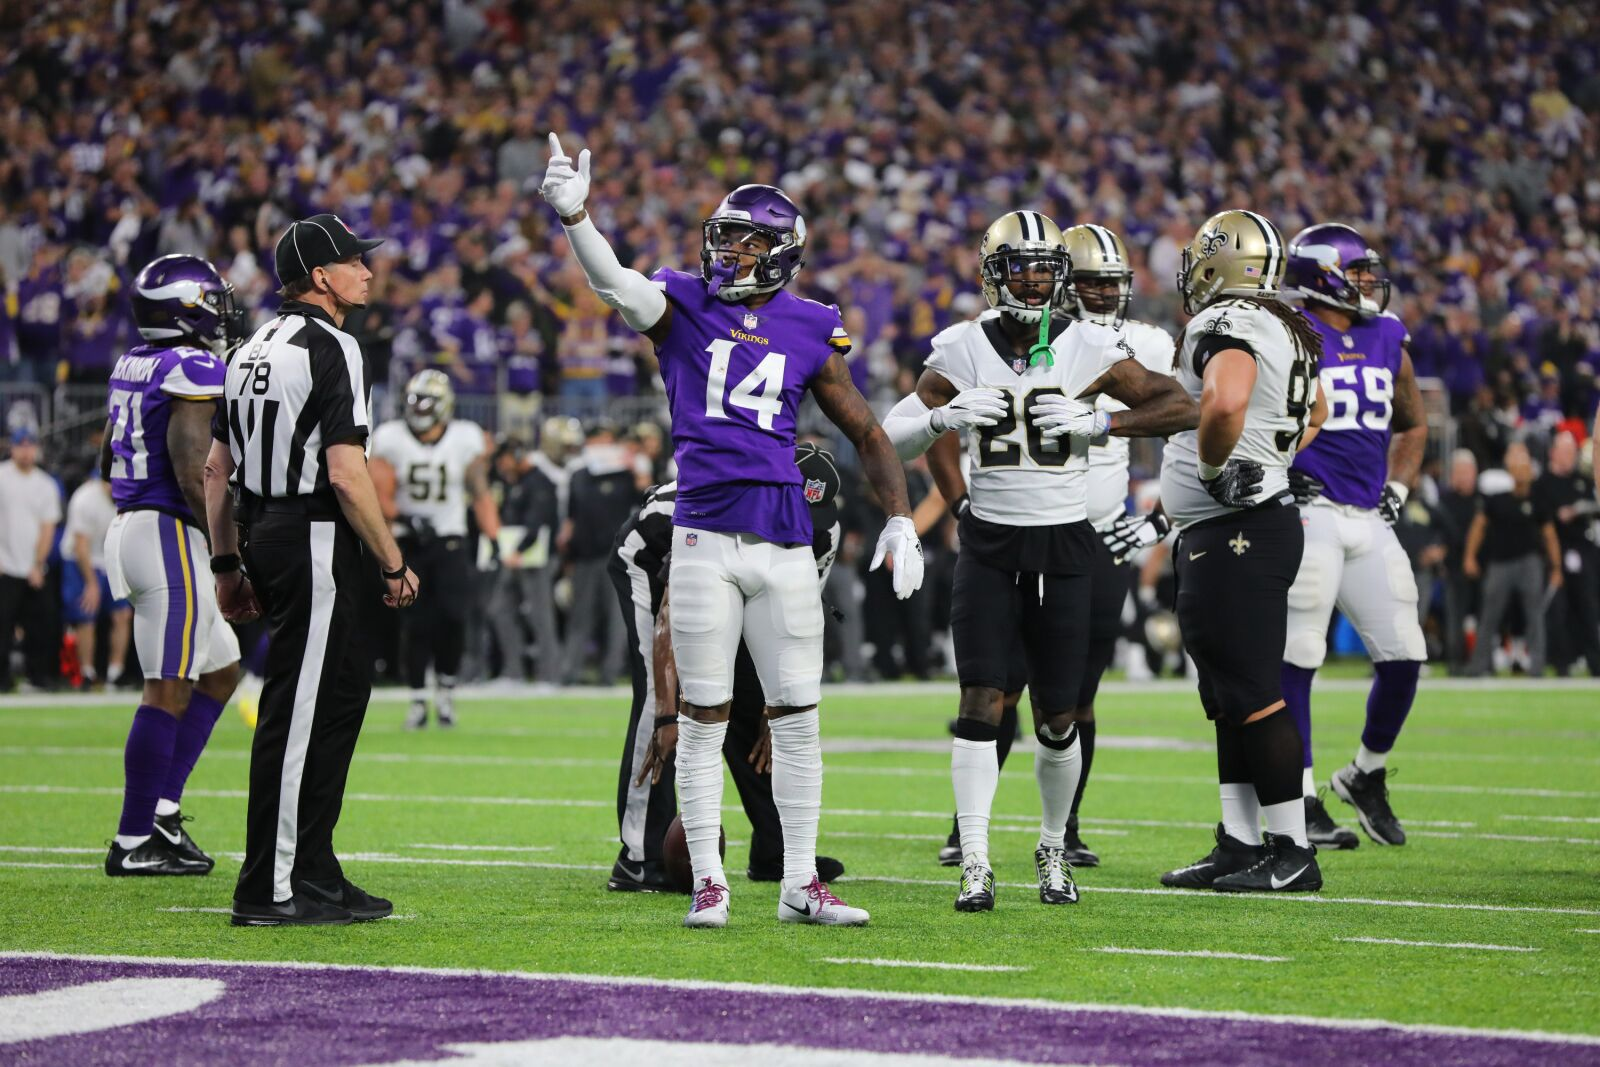 Vikings, Eagles top the board - Football Today News